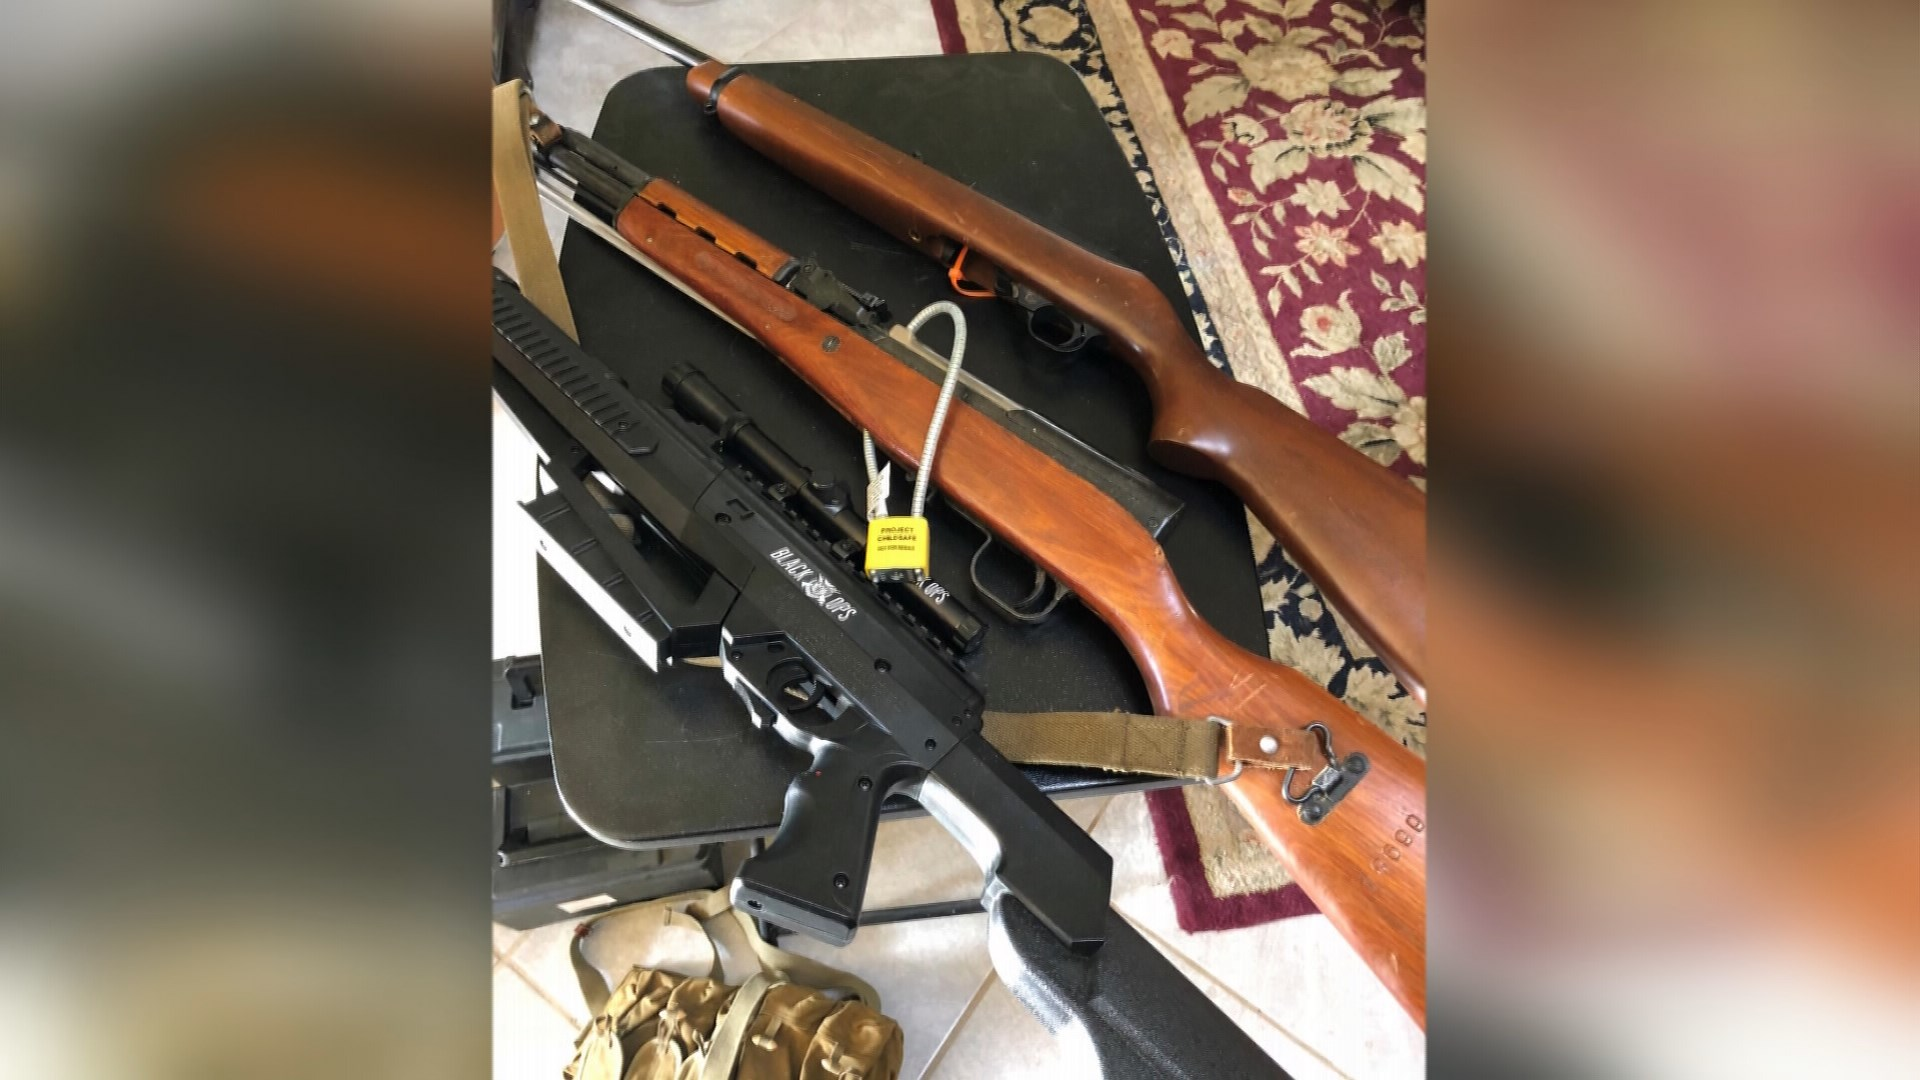 Boise man turns in guns to police, challenges others to do the same